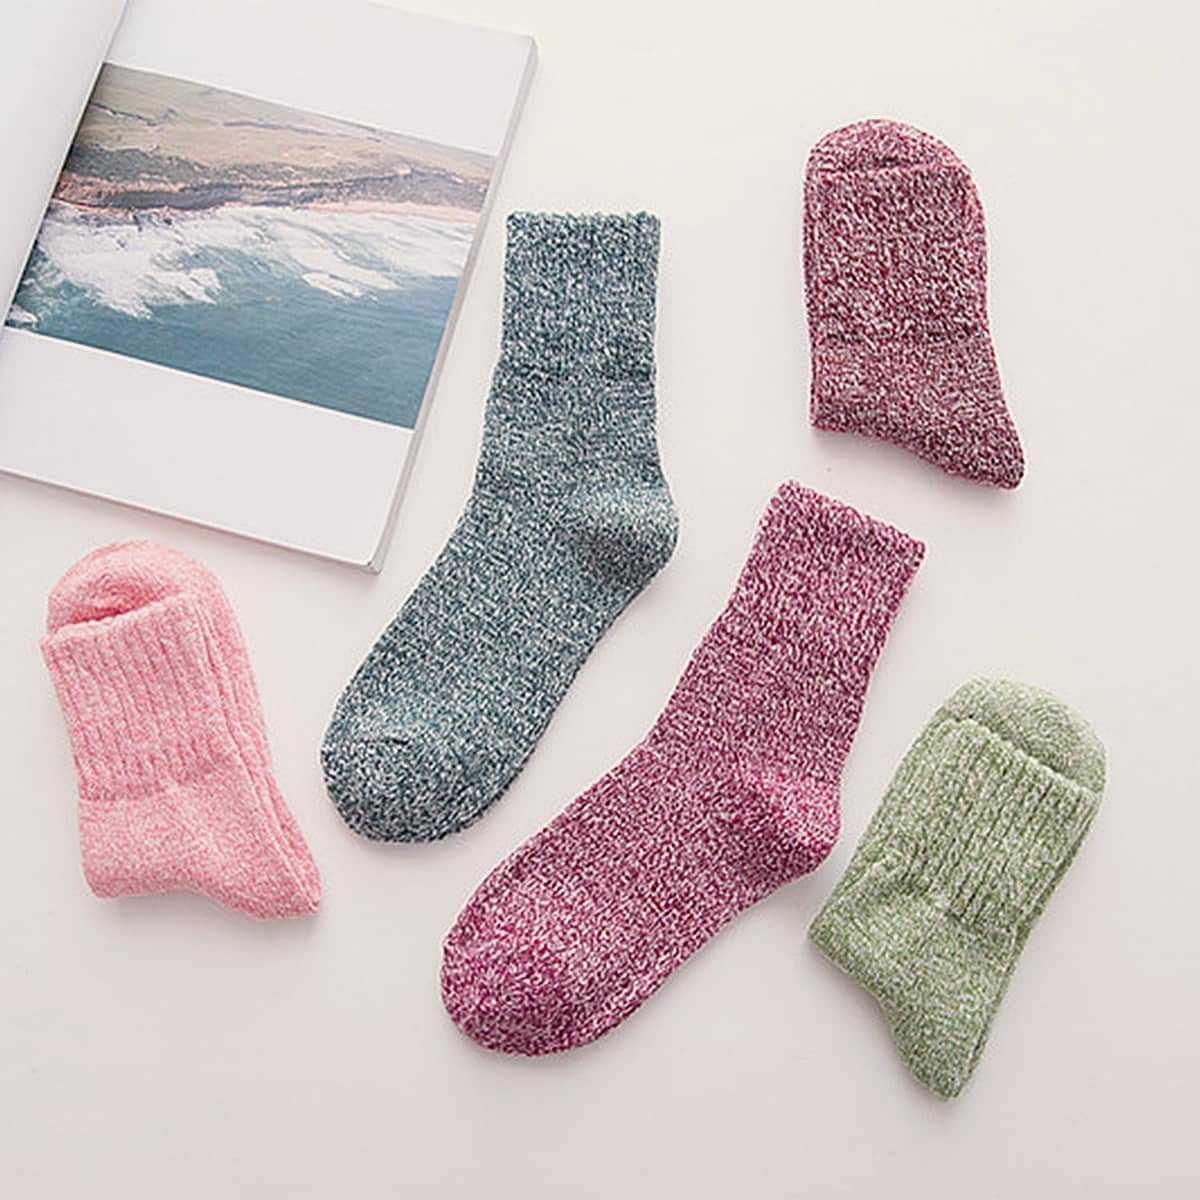 Simple Socks 5pairs in Multicolor by ROMWE on GOOFASH